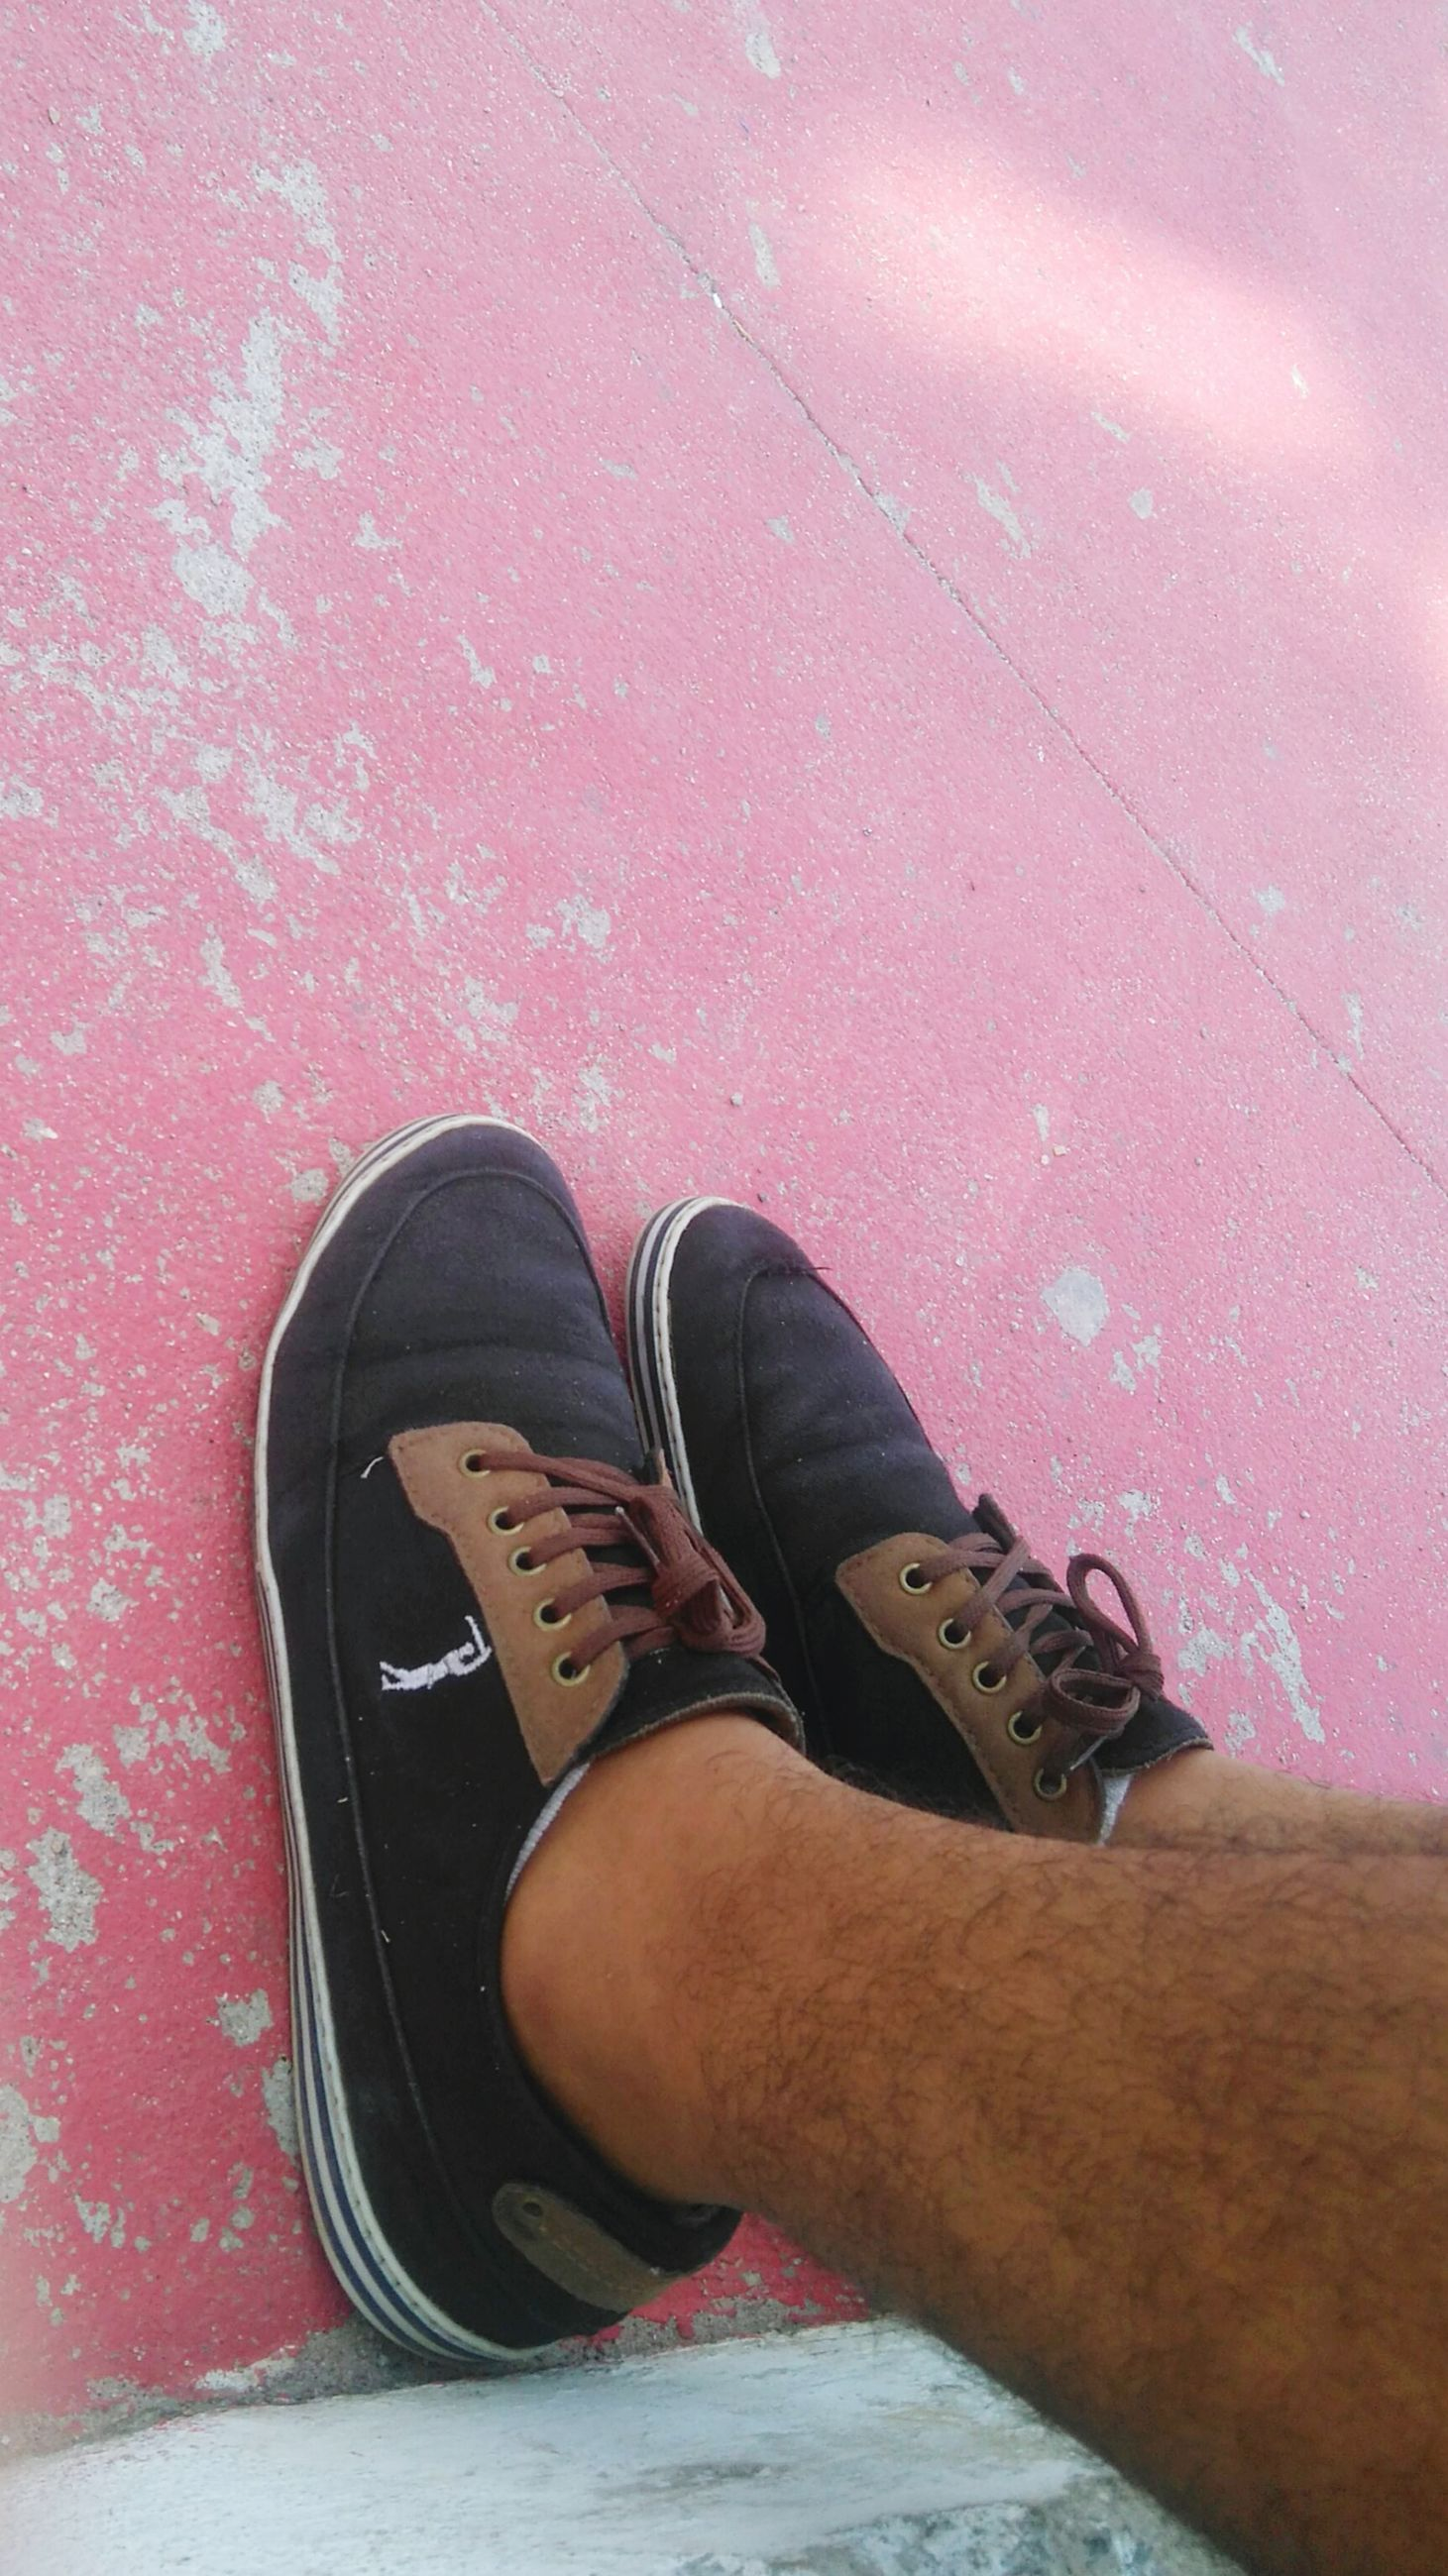 low section, shoe, person, footwear, personal perspective, human foot, jeans, street, footpath, day, pink color